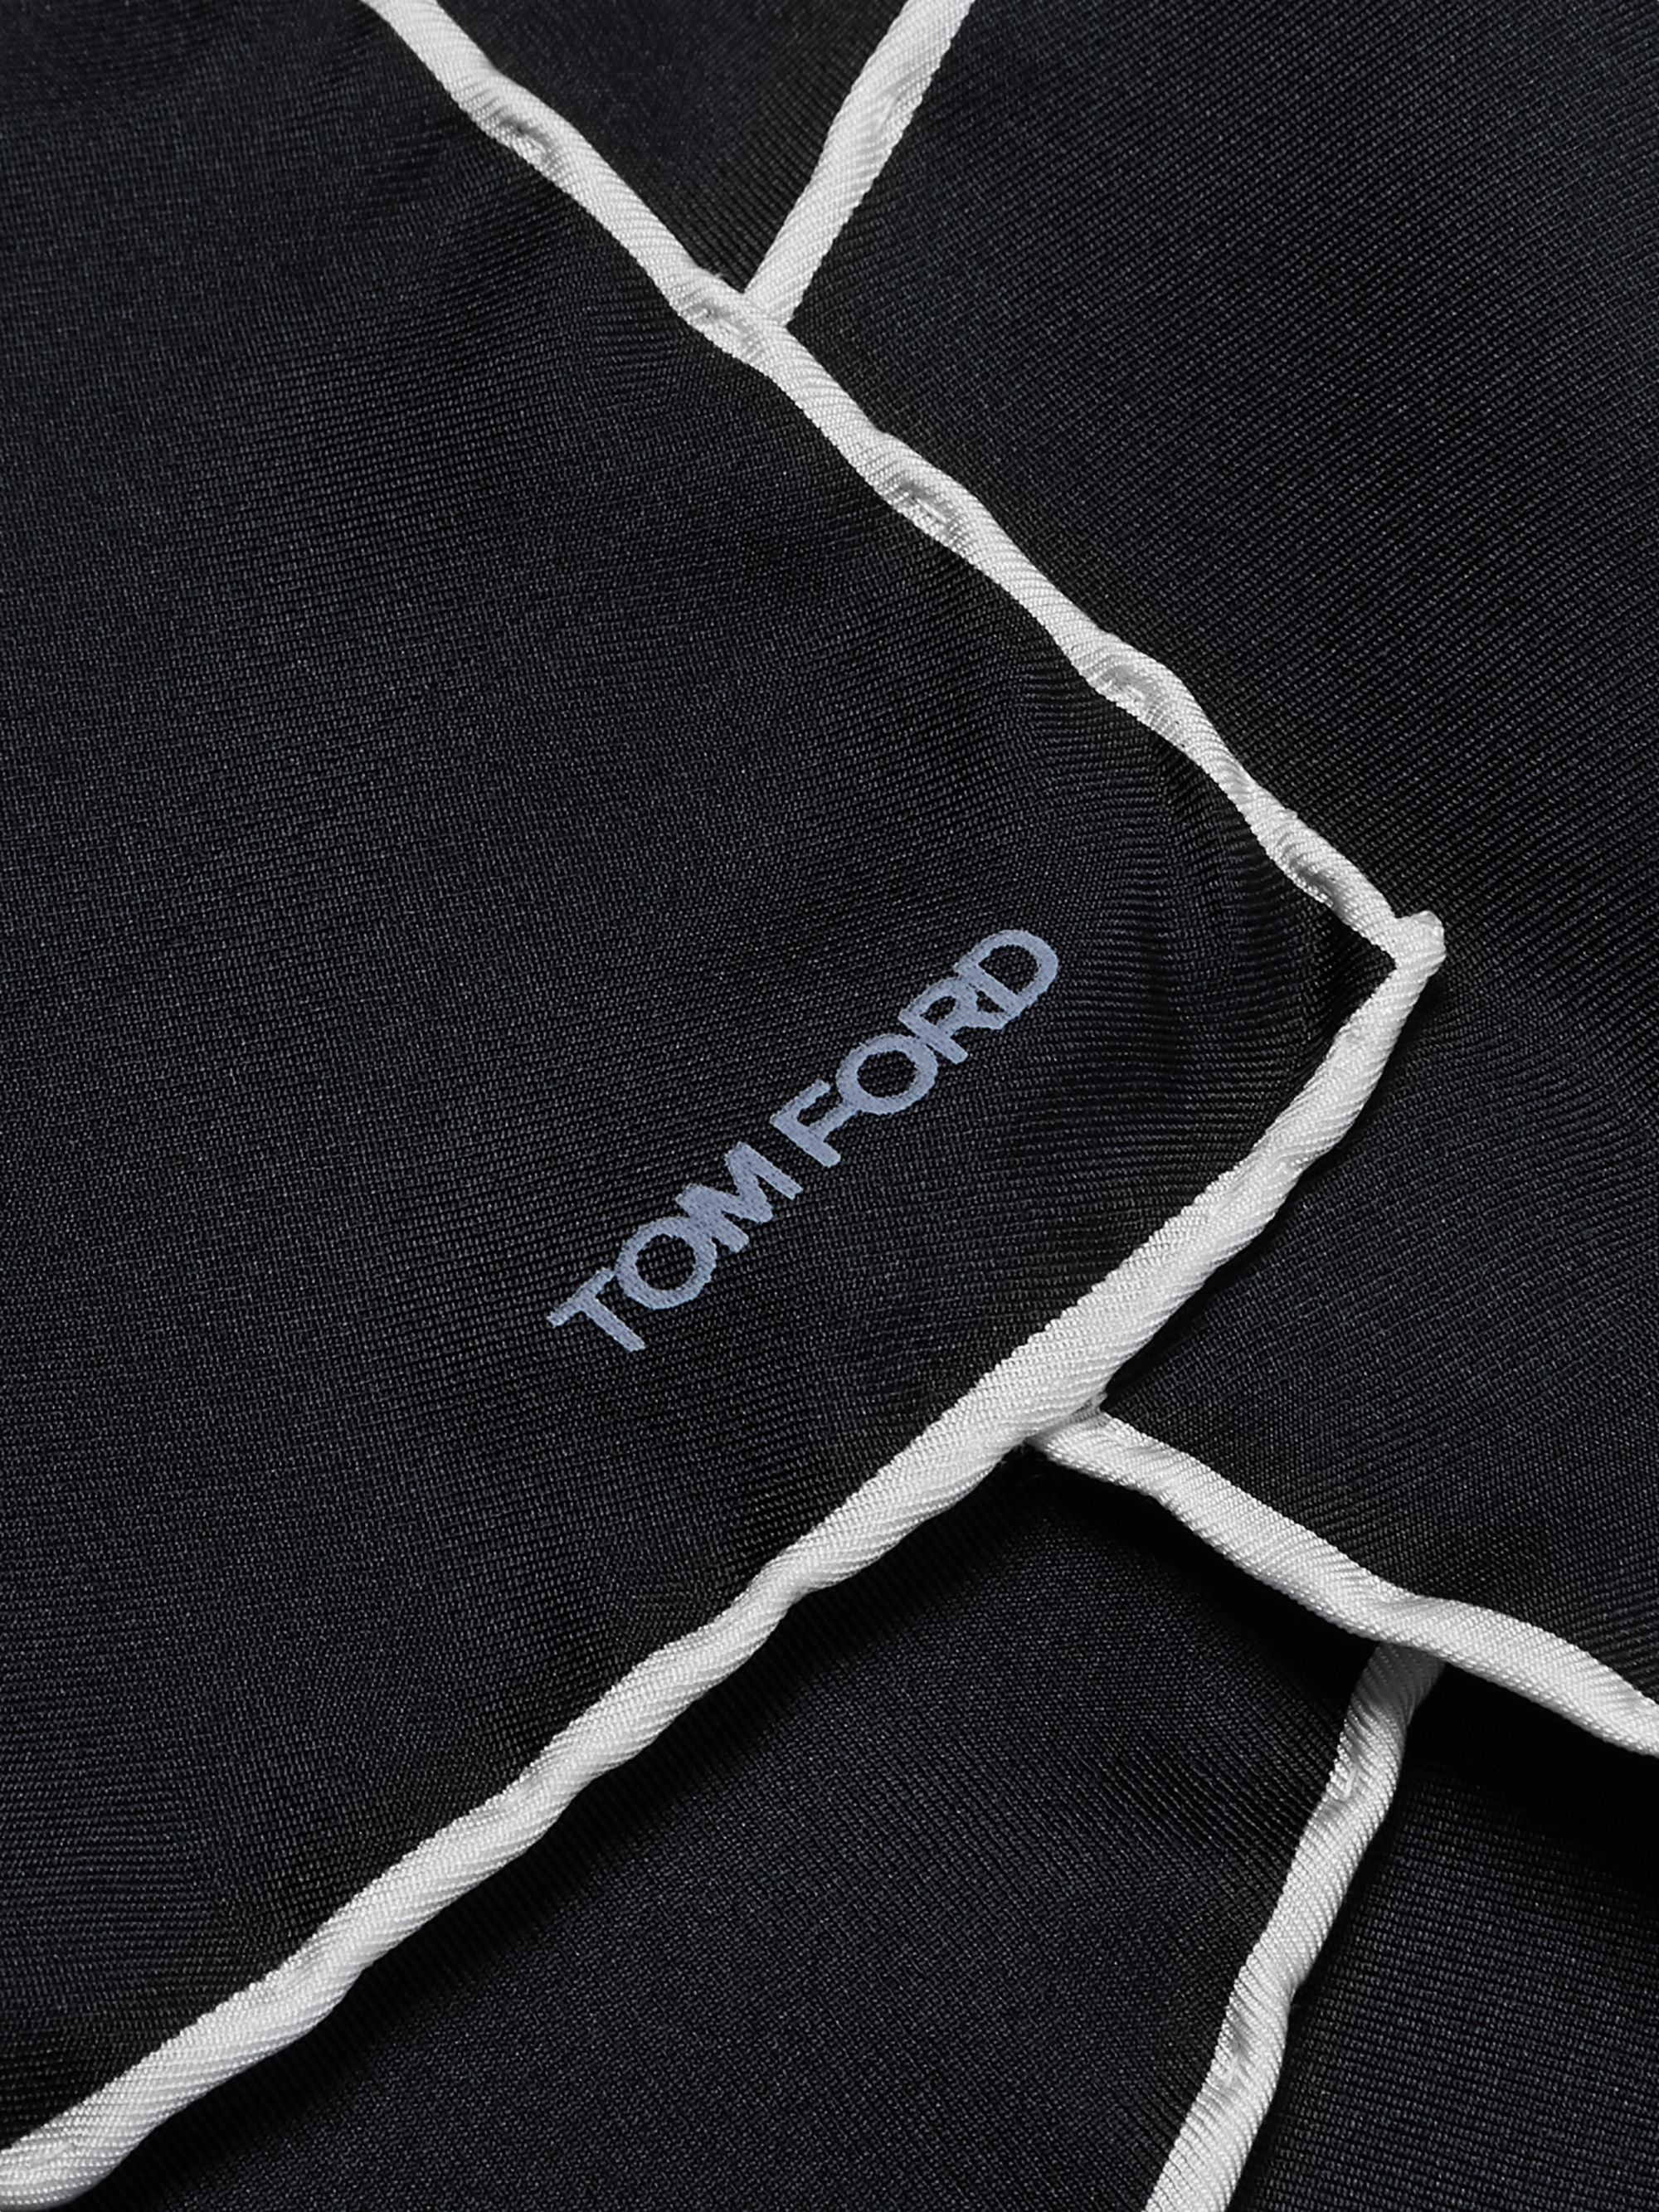 TOM FORD Contrast-Tipped Silk-Twill Pocket Square